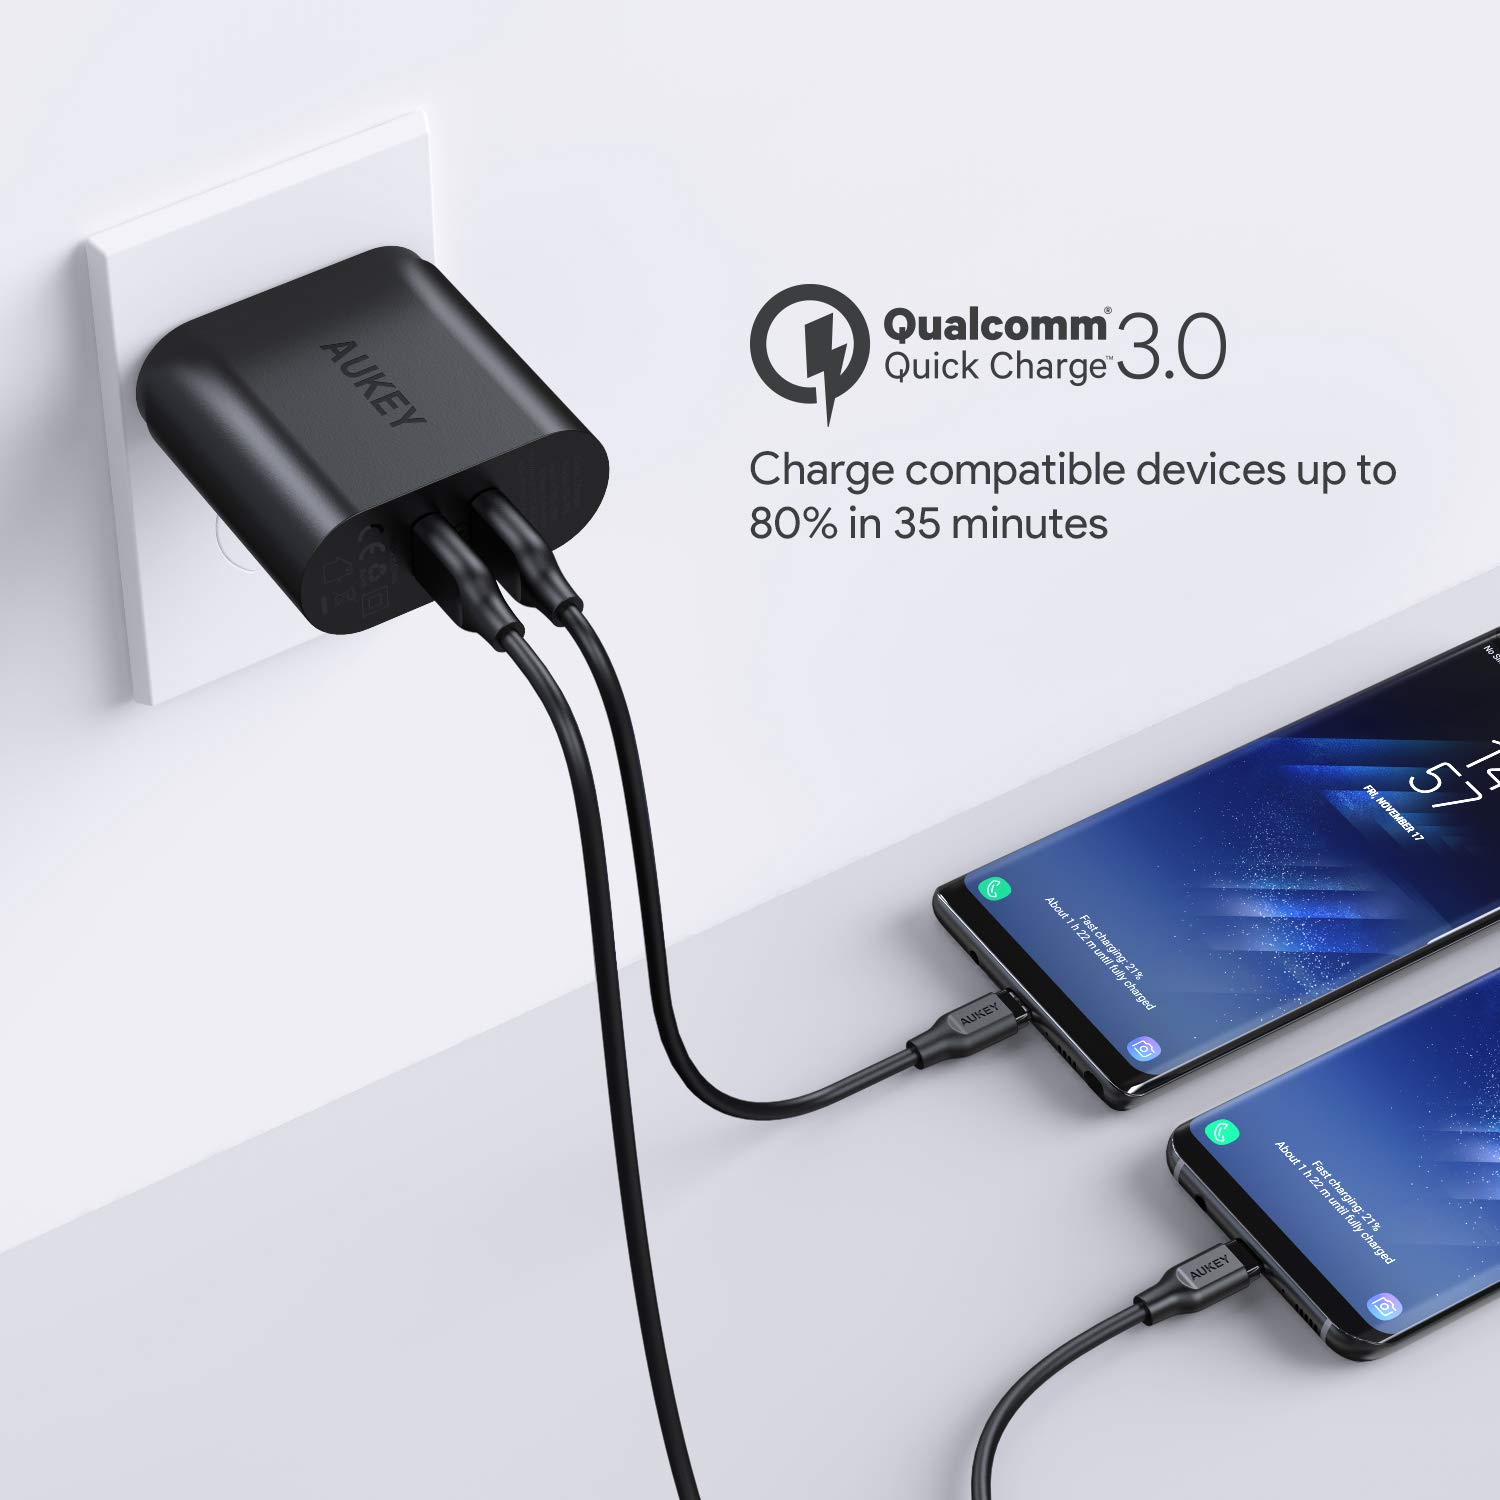 Aukey Quick Charge 30 Usb Wall Charger With Dual Ports Compatible Qc Samsung Galaxy Note8 S8 Lg G6 V20 Htc 10 And More Cell Phones